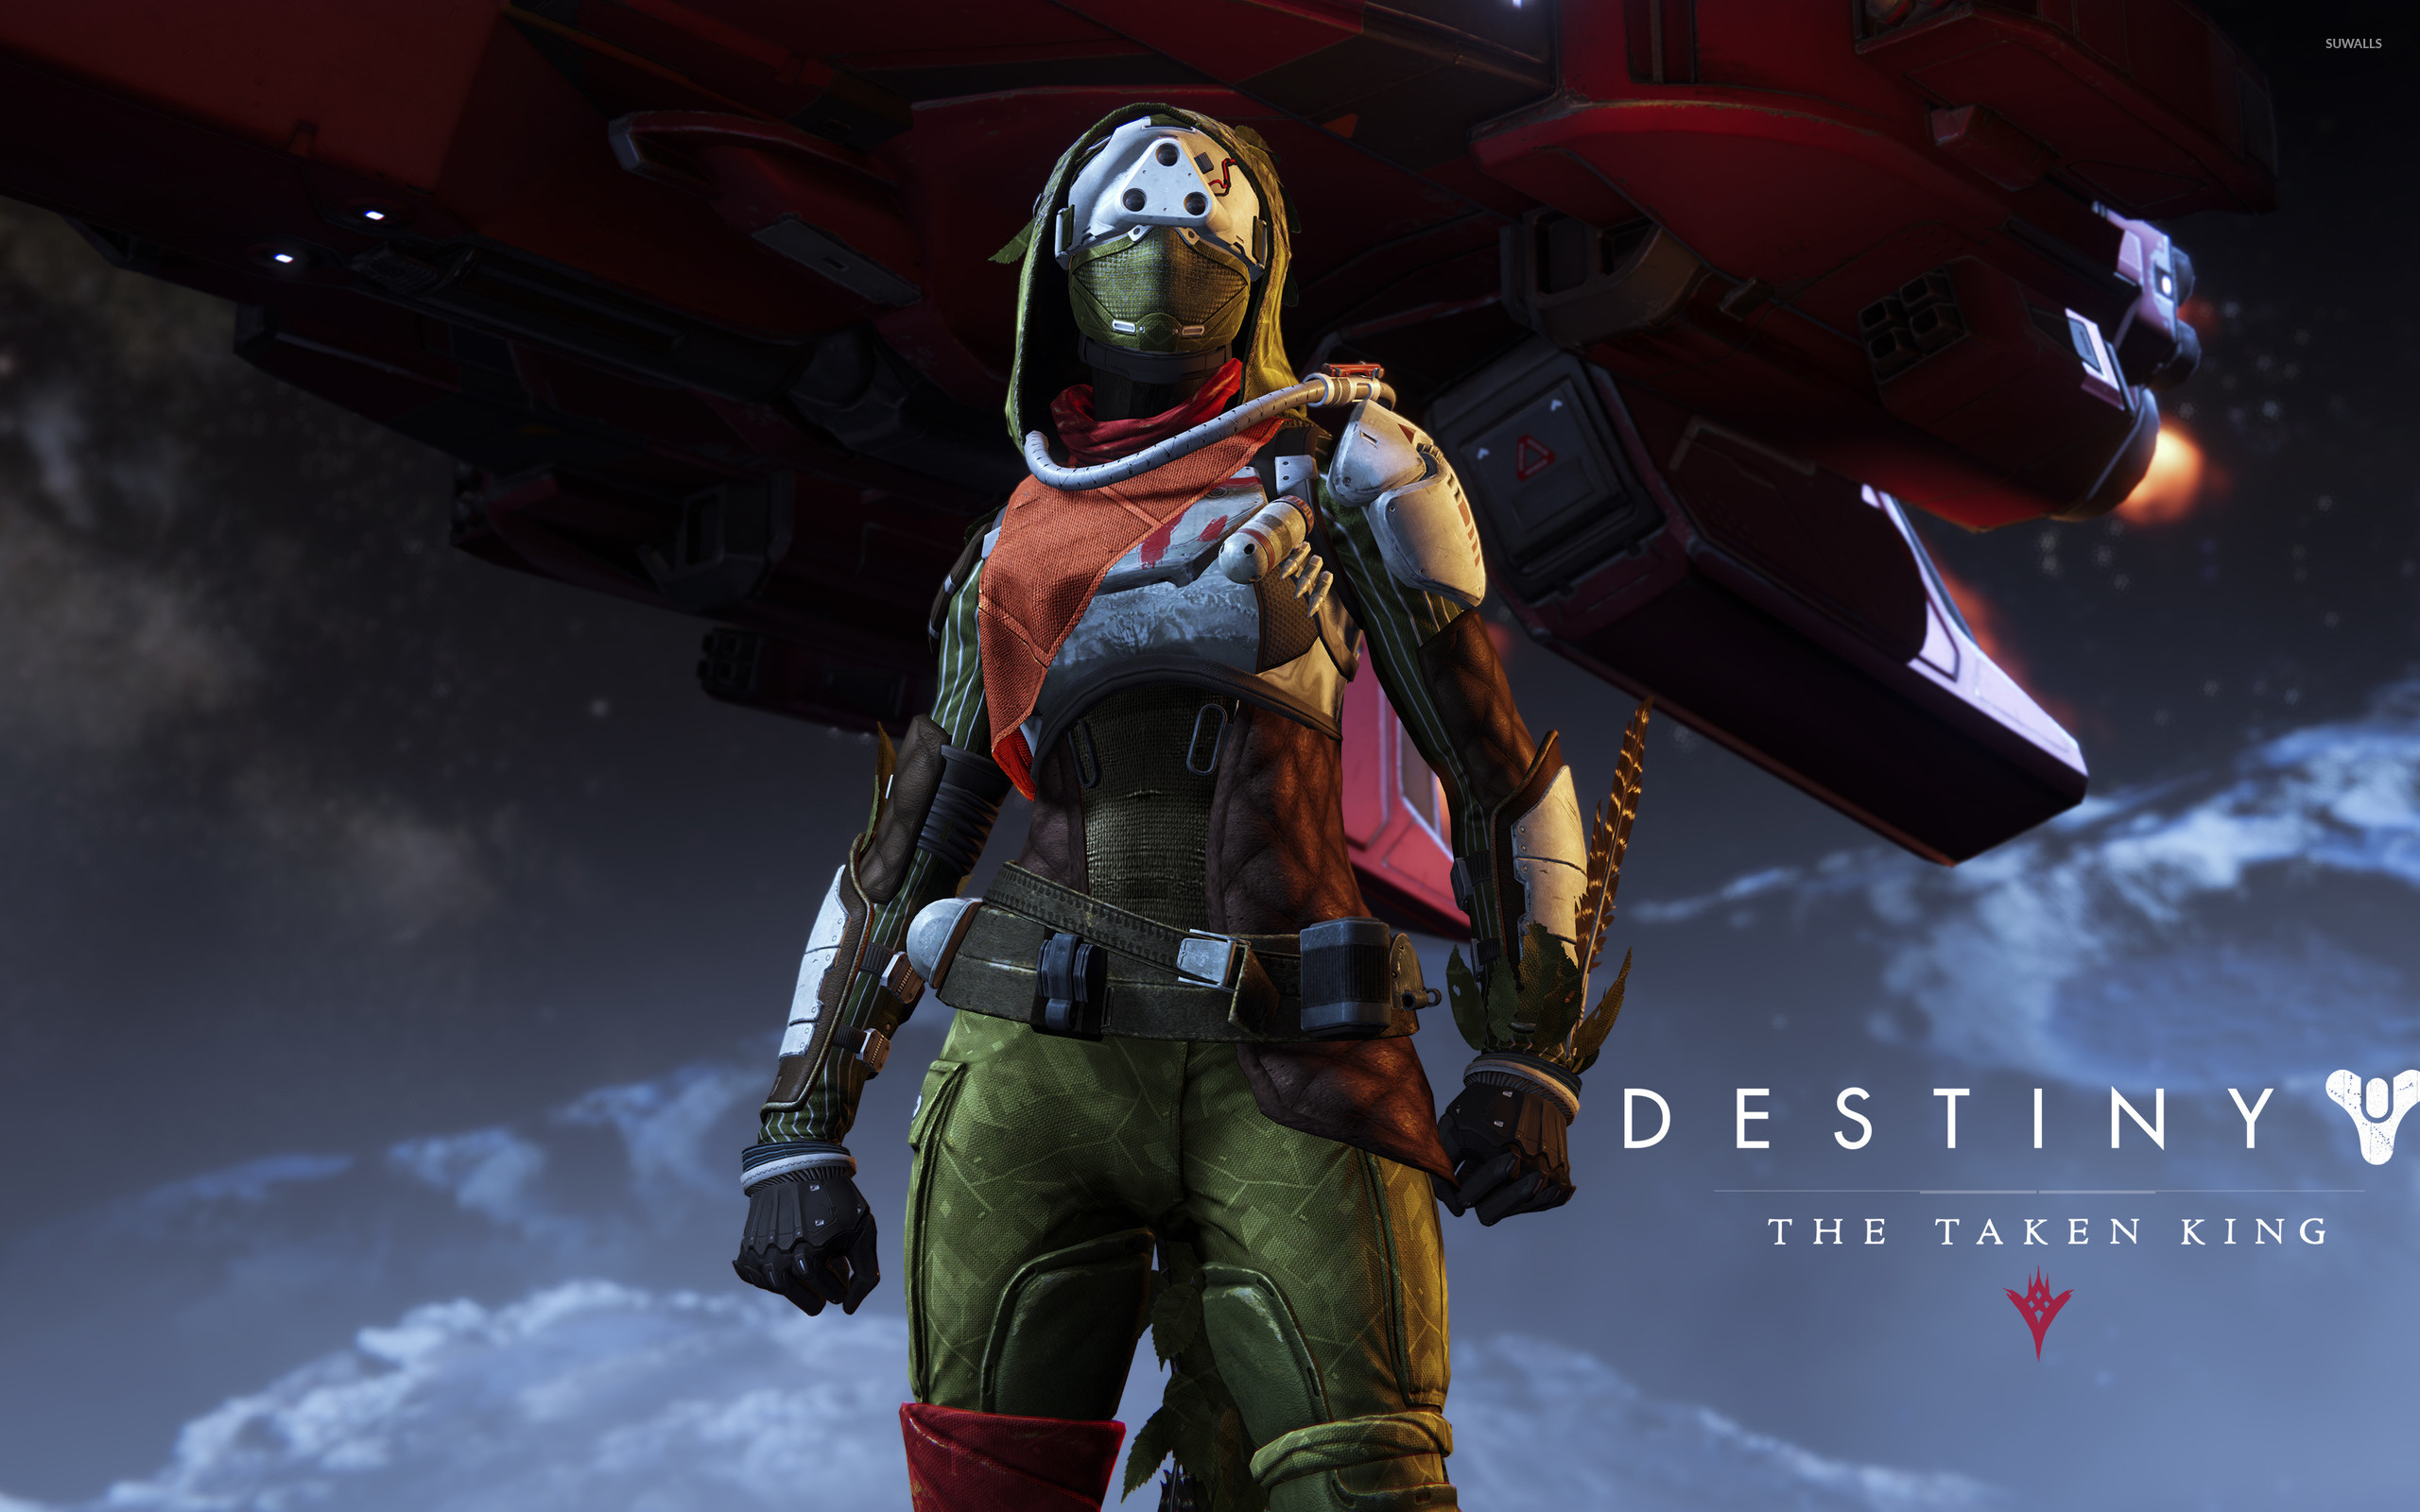 2560x1600 Hunter female - Destiny: The Taken King wallpaper - Game wallpapers .